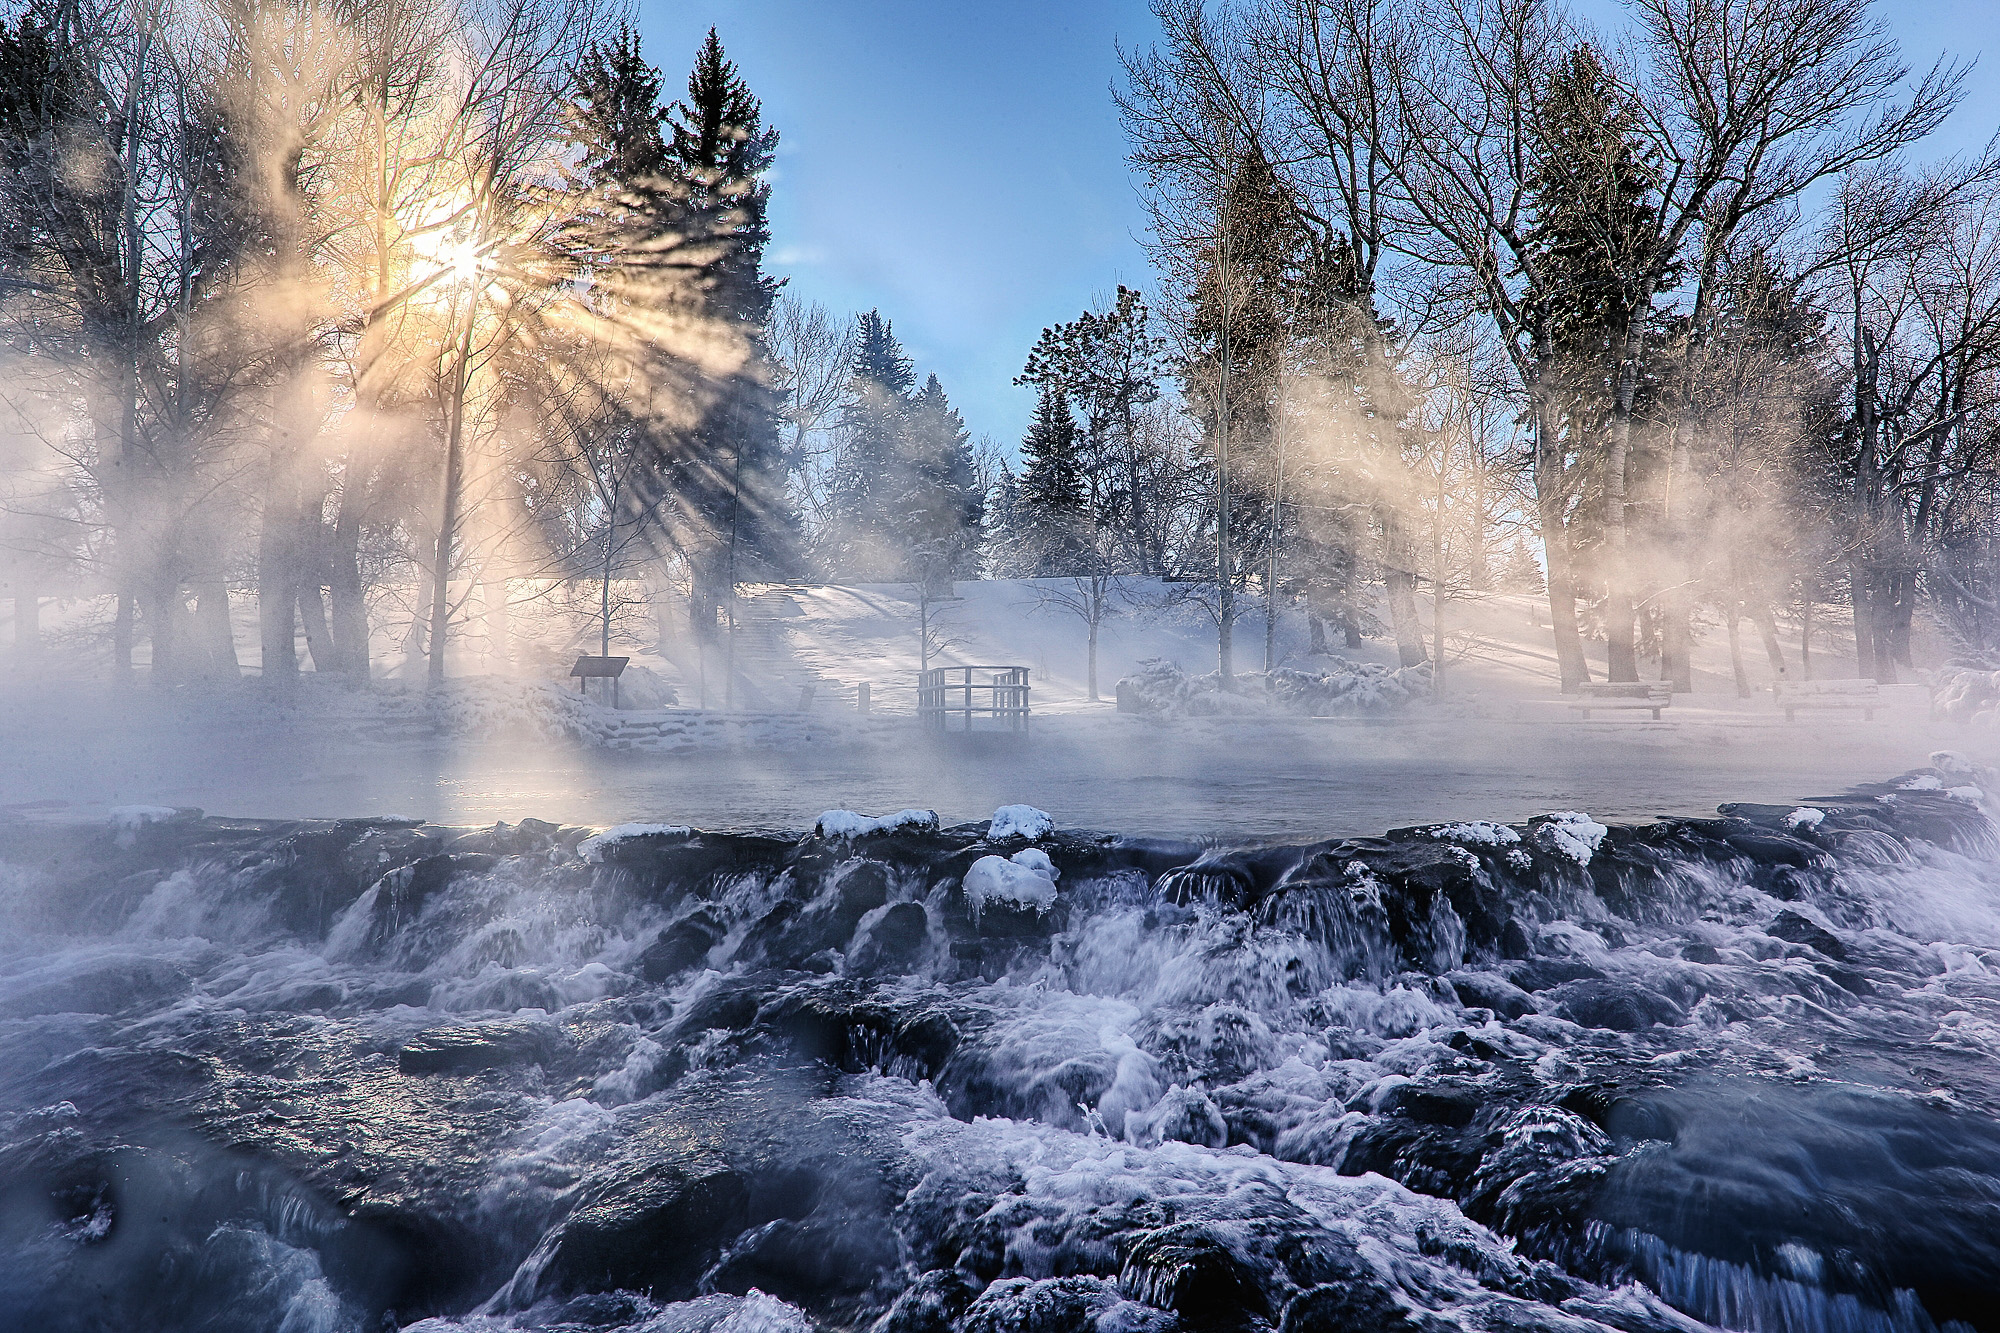 Steam rises from water in sub-zero temperatures as the sun shines through the trees at Giant Springs State Park in Montana.